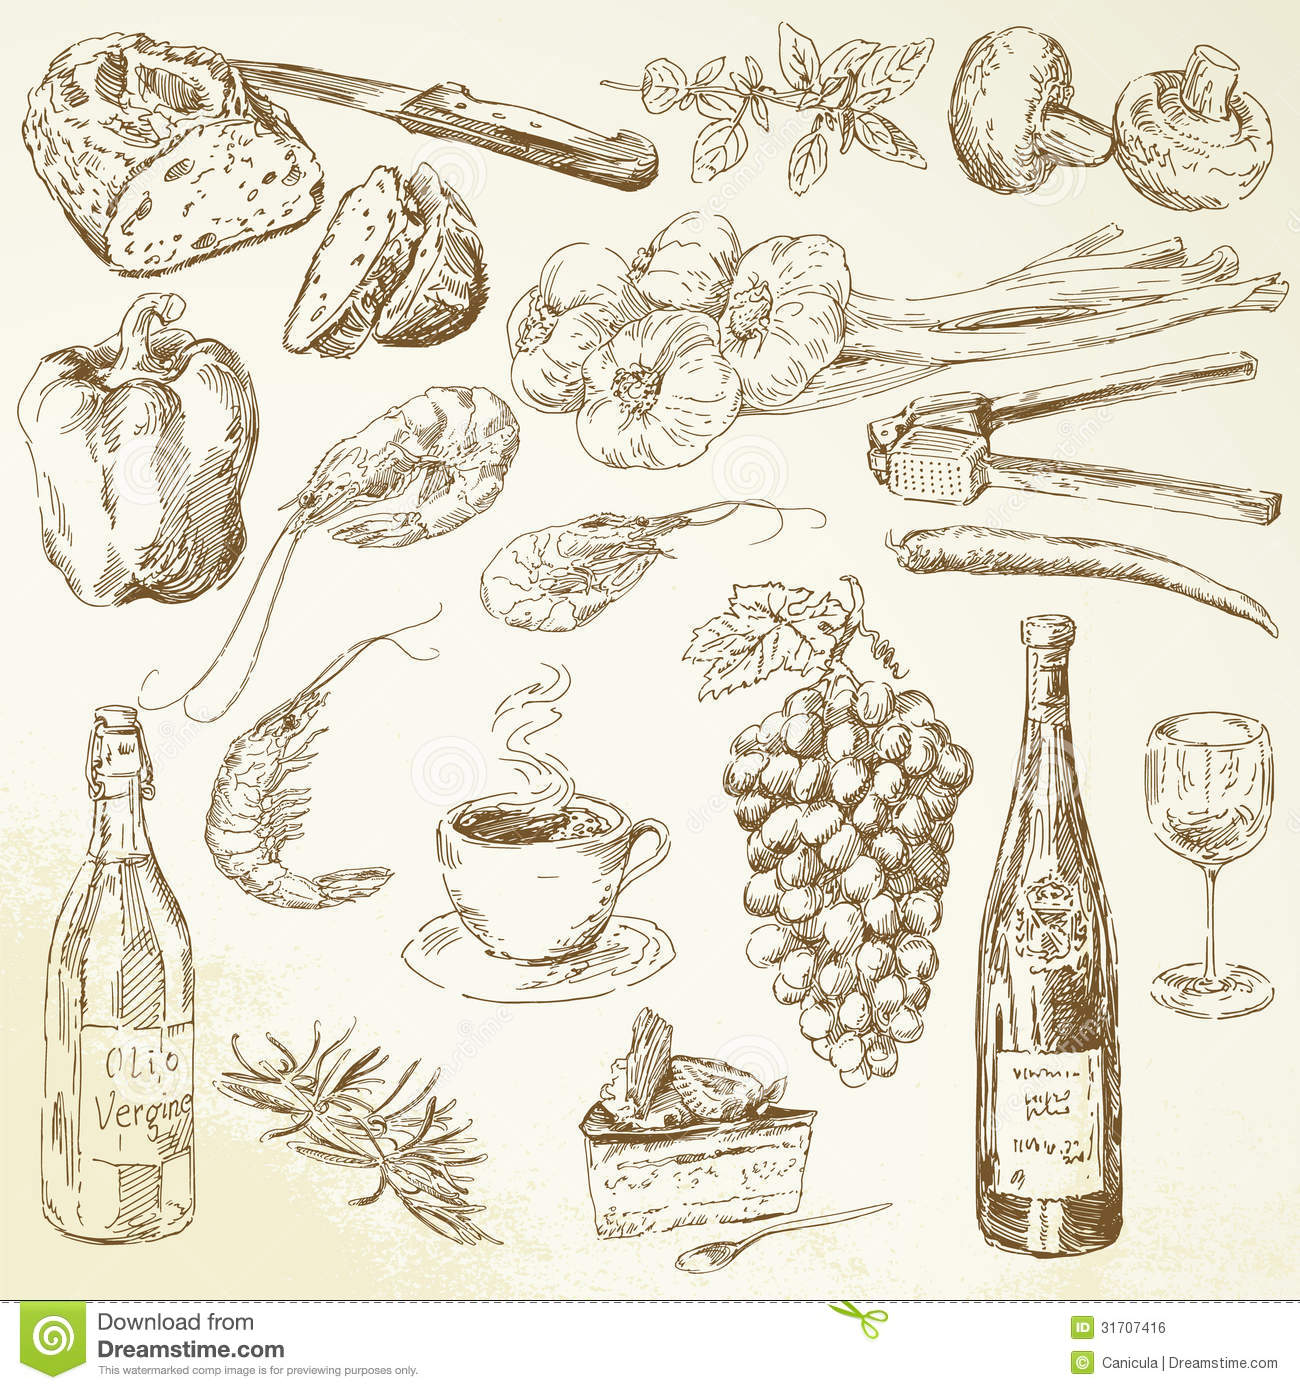 Food Collection - Drawing Royalty Free Stock Image - Image: 31707416